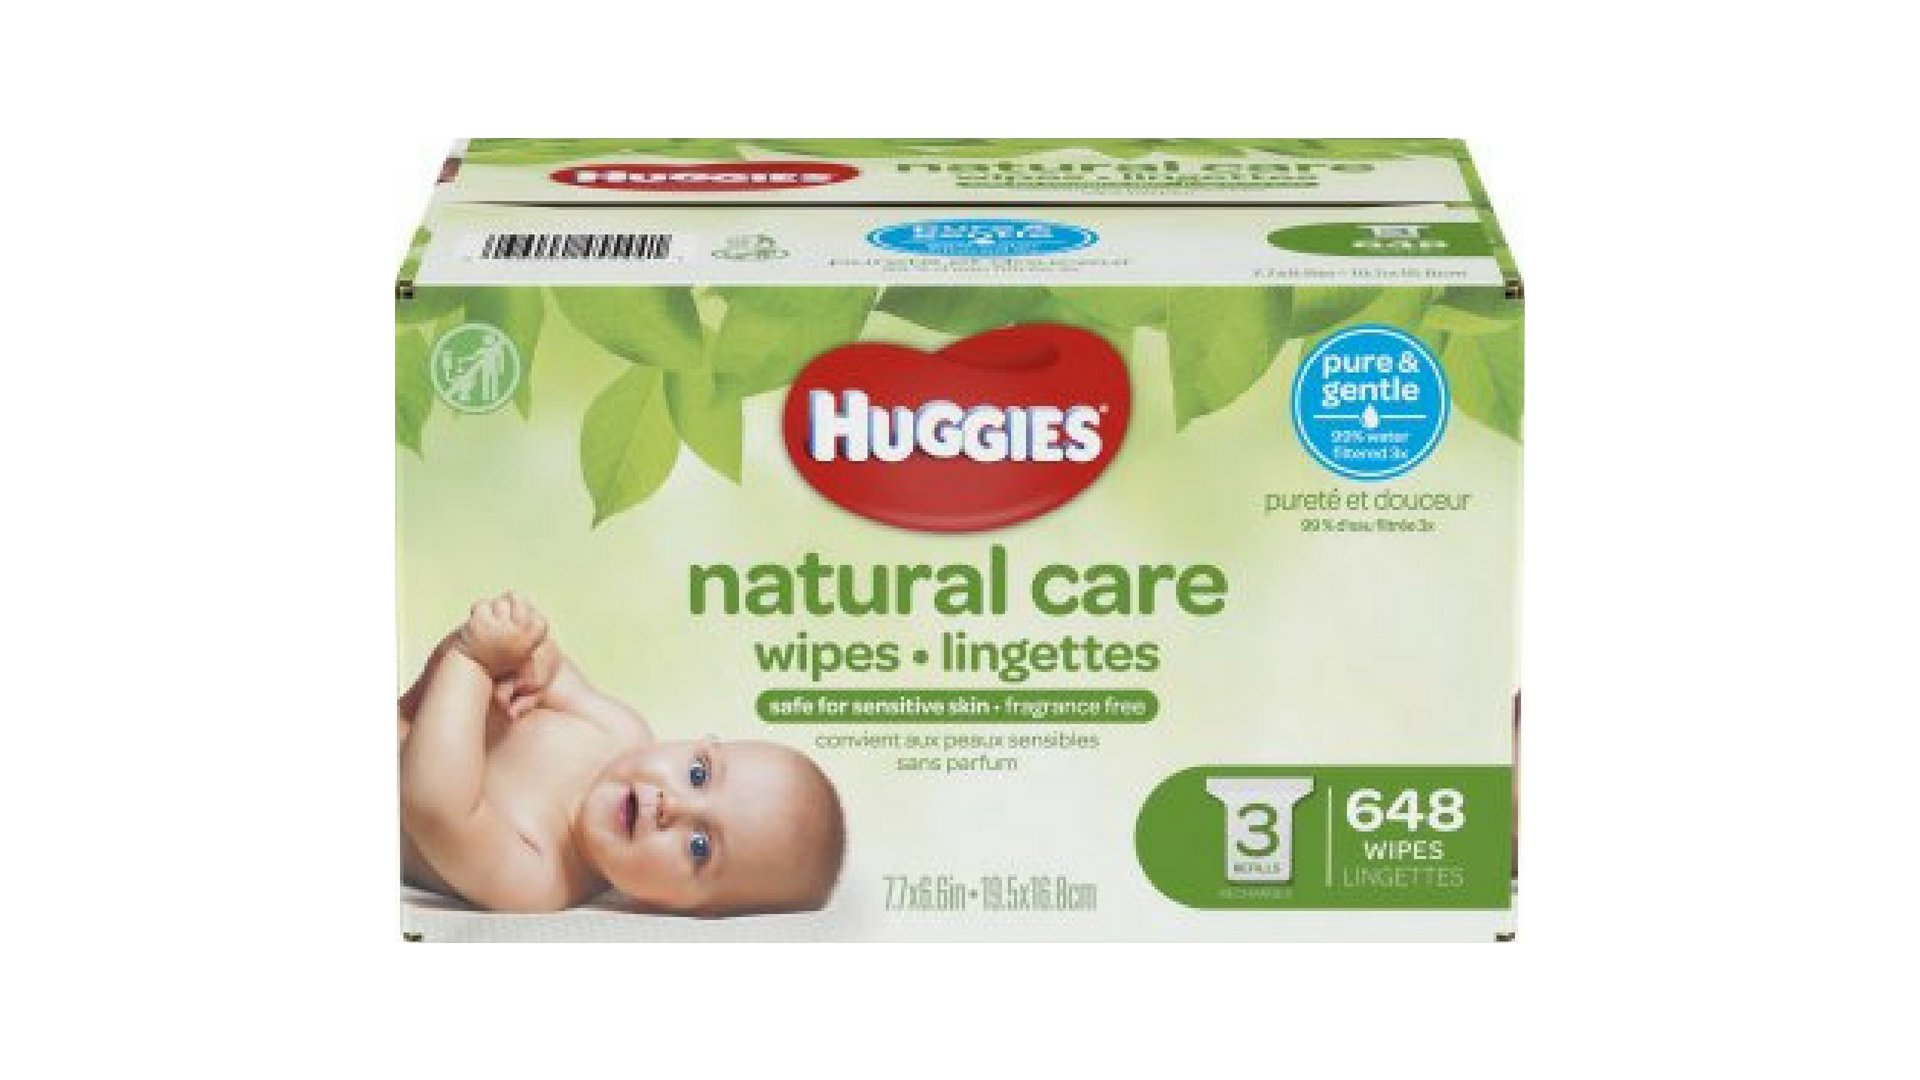 Natural Care Baby Wipes Pure & Gentle, Unscented Refills (648 CT)